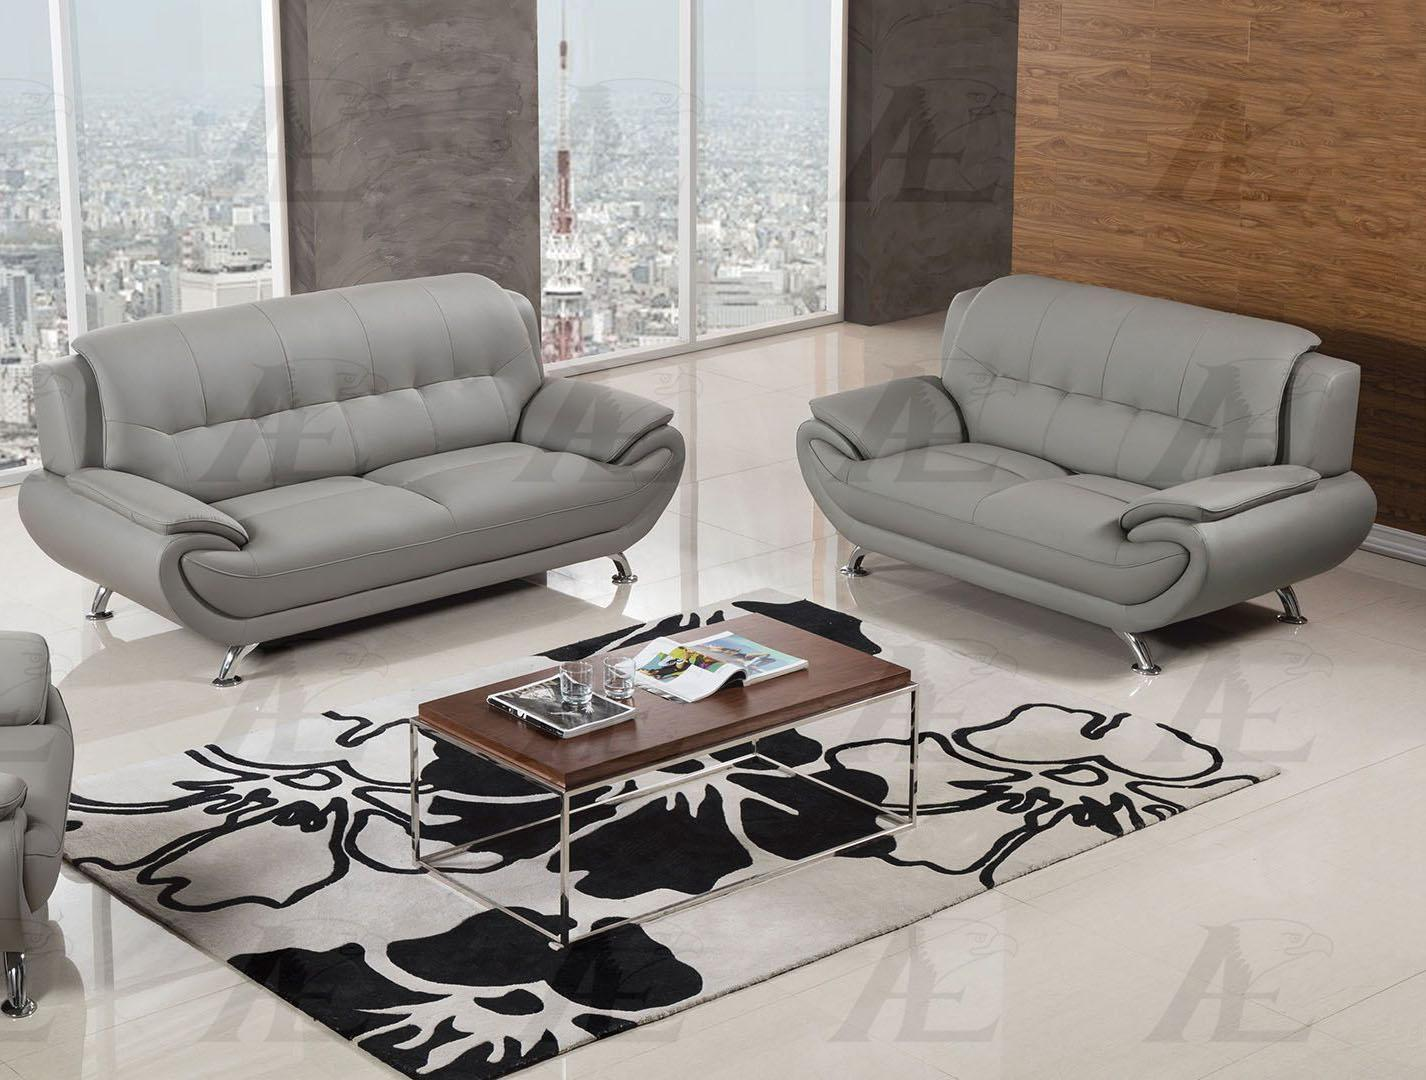 American Eagle AE208-GR Gray Sofa and 2 Loveseats Set F/ Leather 3Pcs